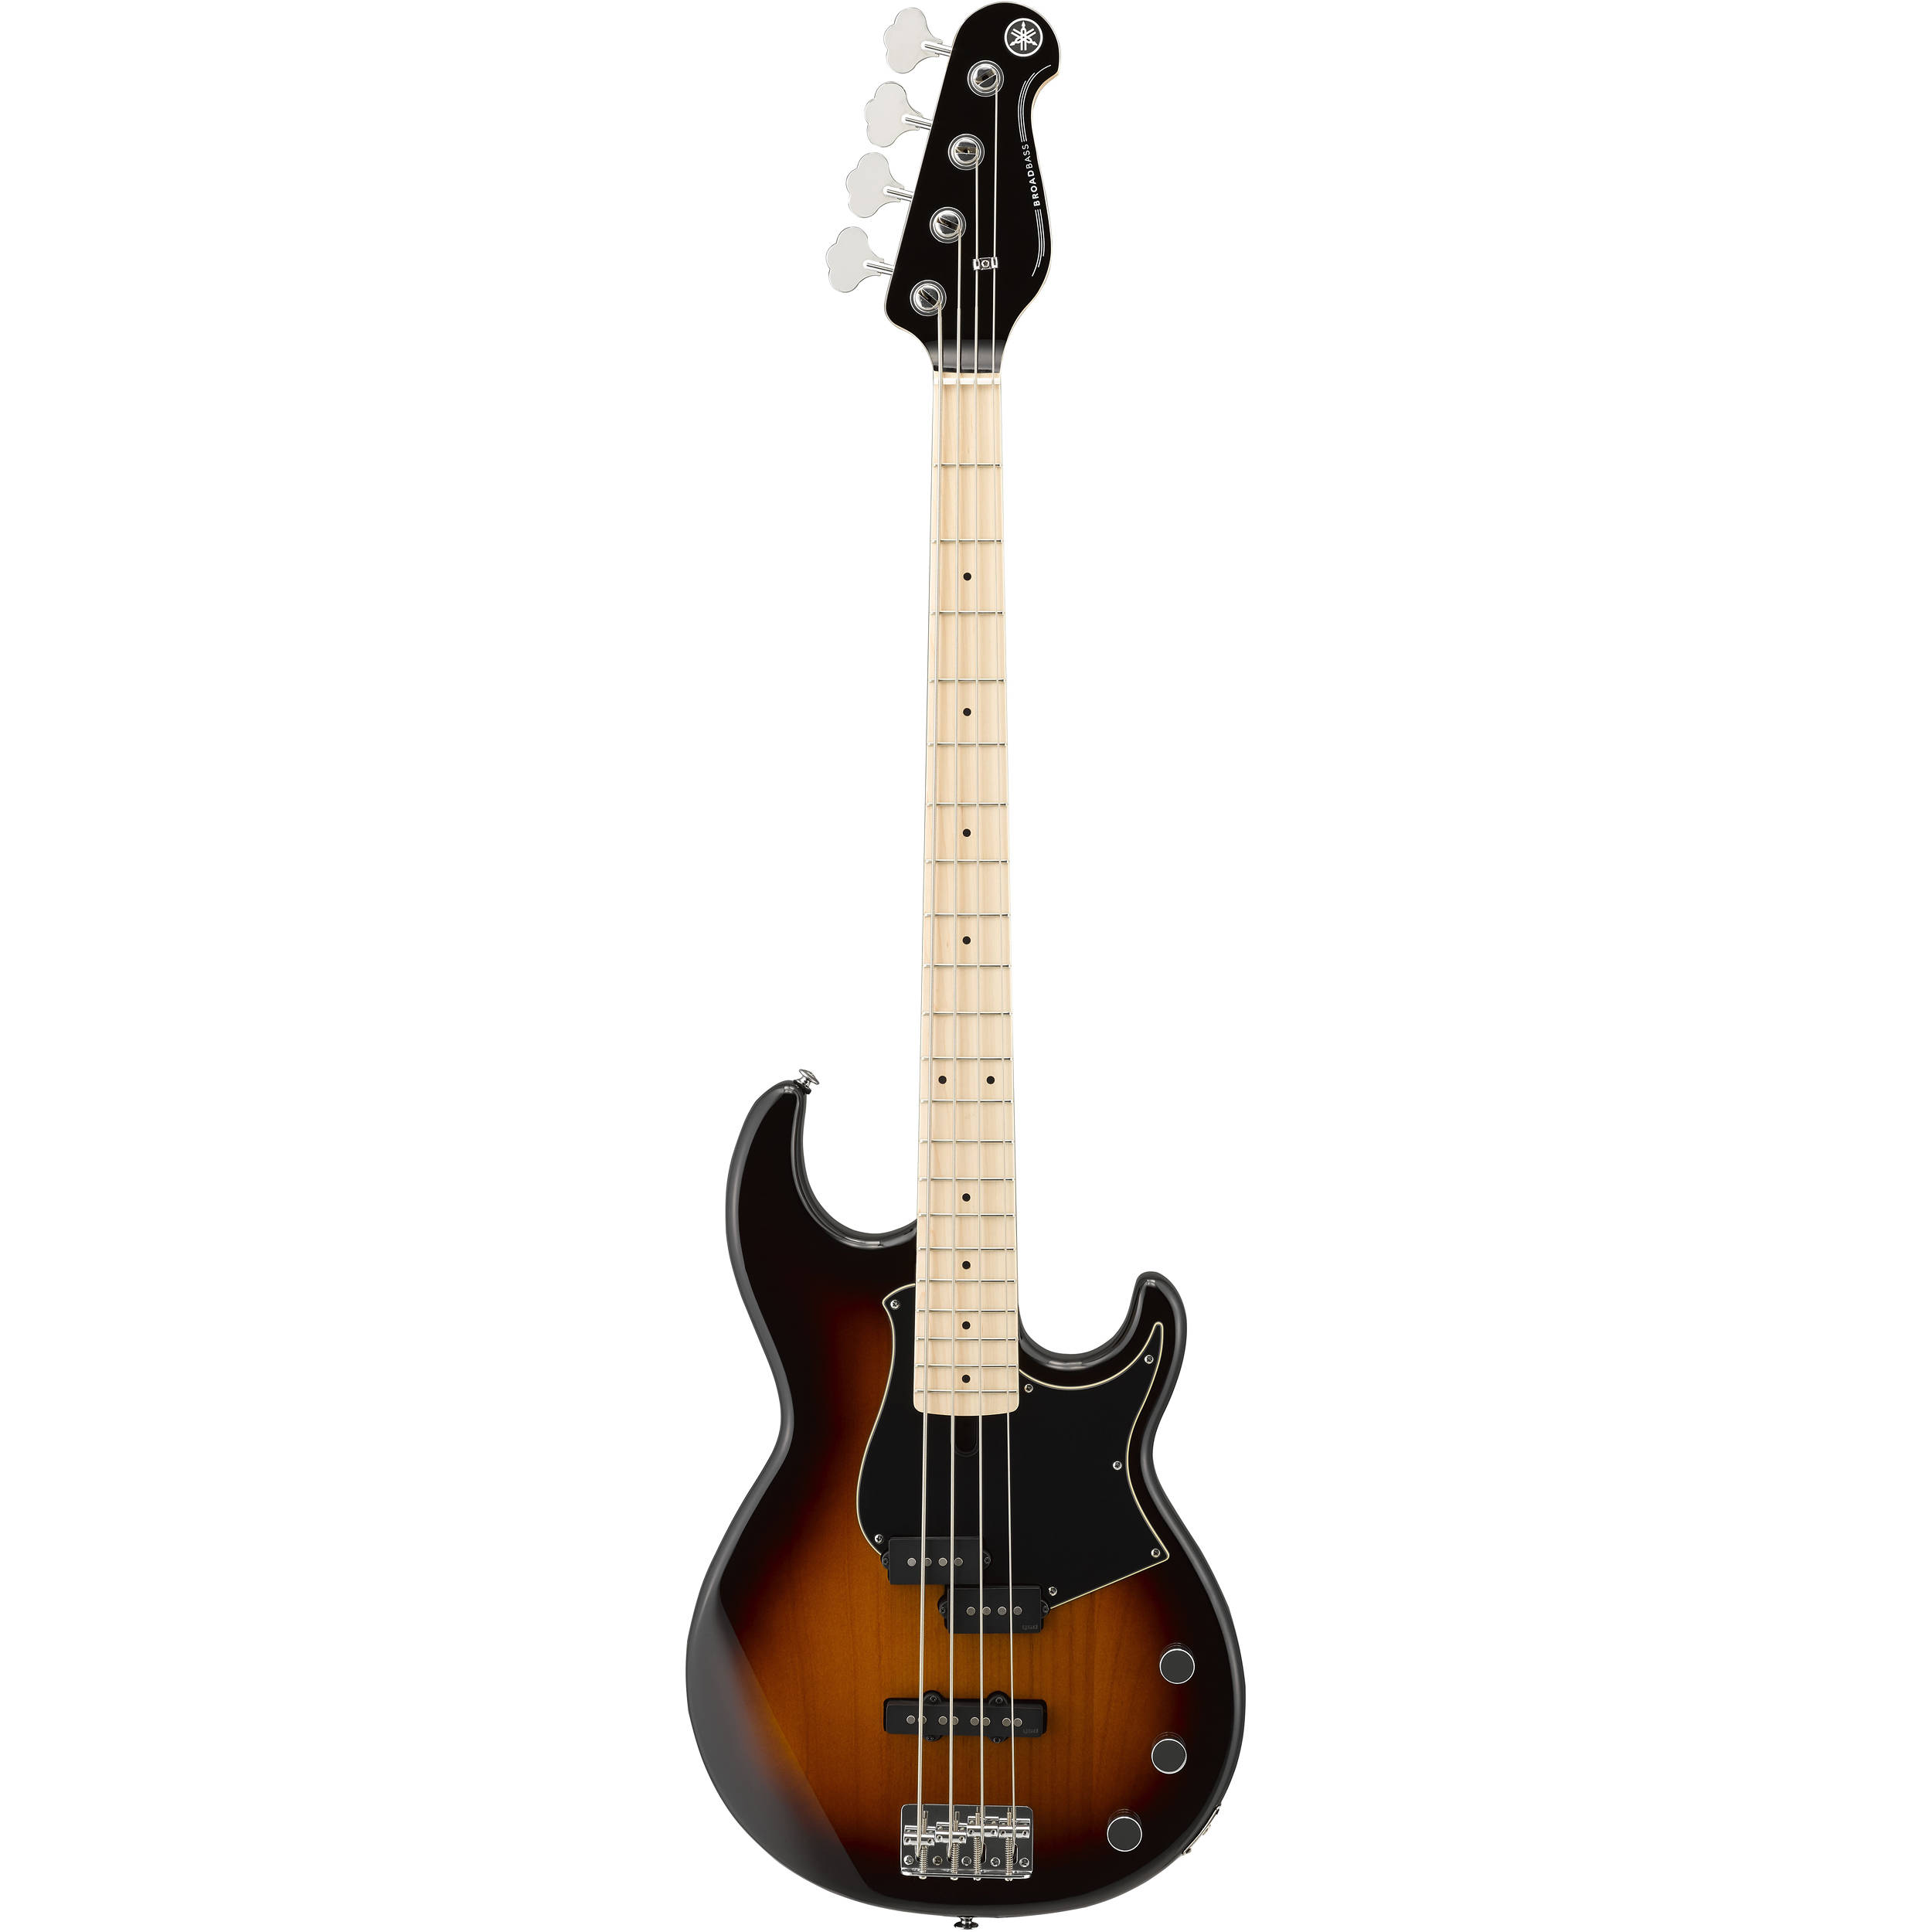 Https C Product 1391944 Reg Electric Guitar Schematics 2 10 From 31 Votes Yamaha Bb434m Tbs 4 String Bass 1394976